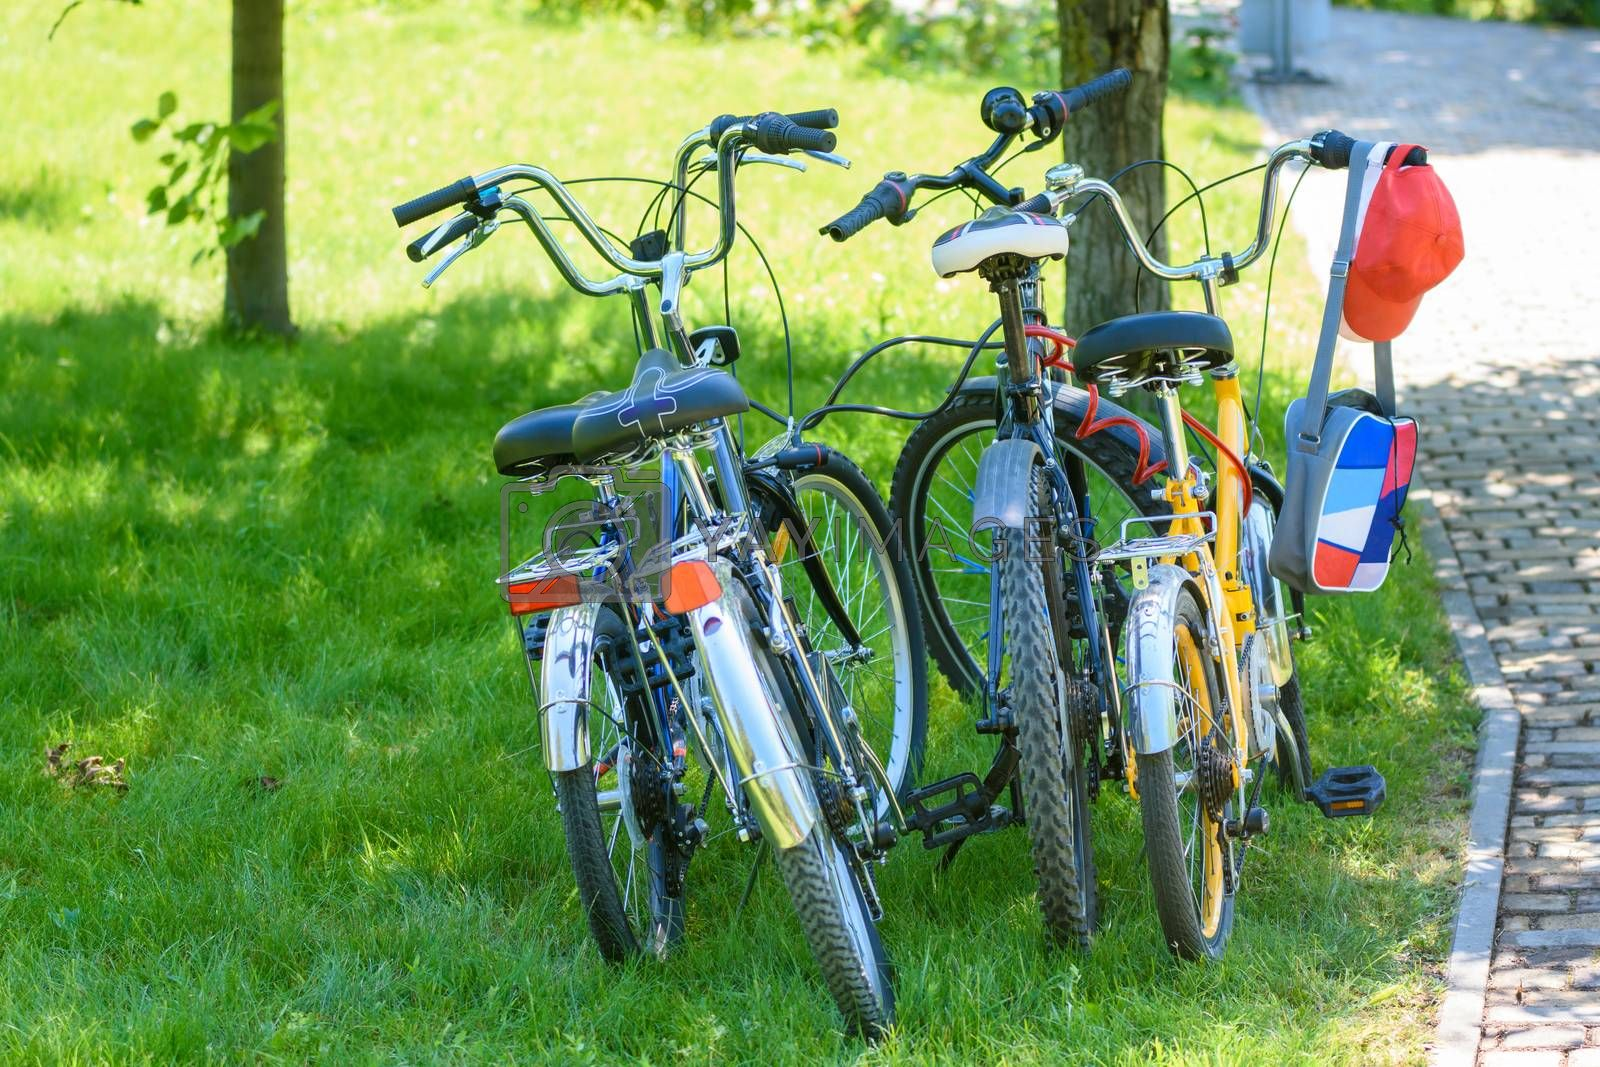 four bikes of different sizes standing on the lawn in the park